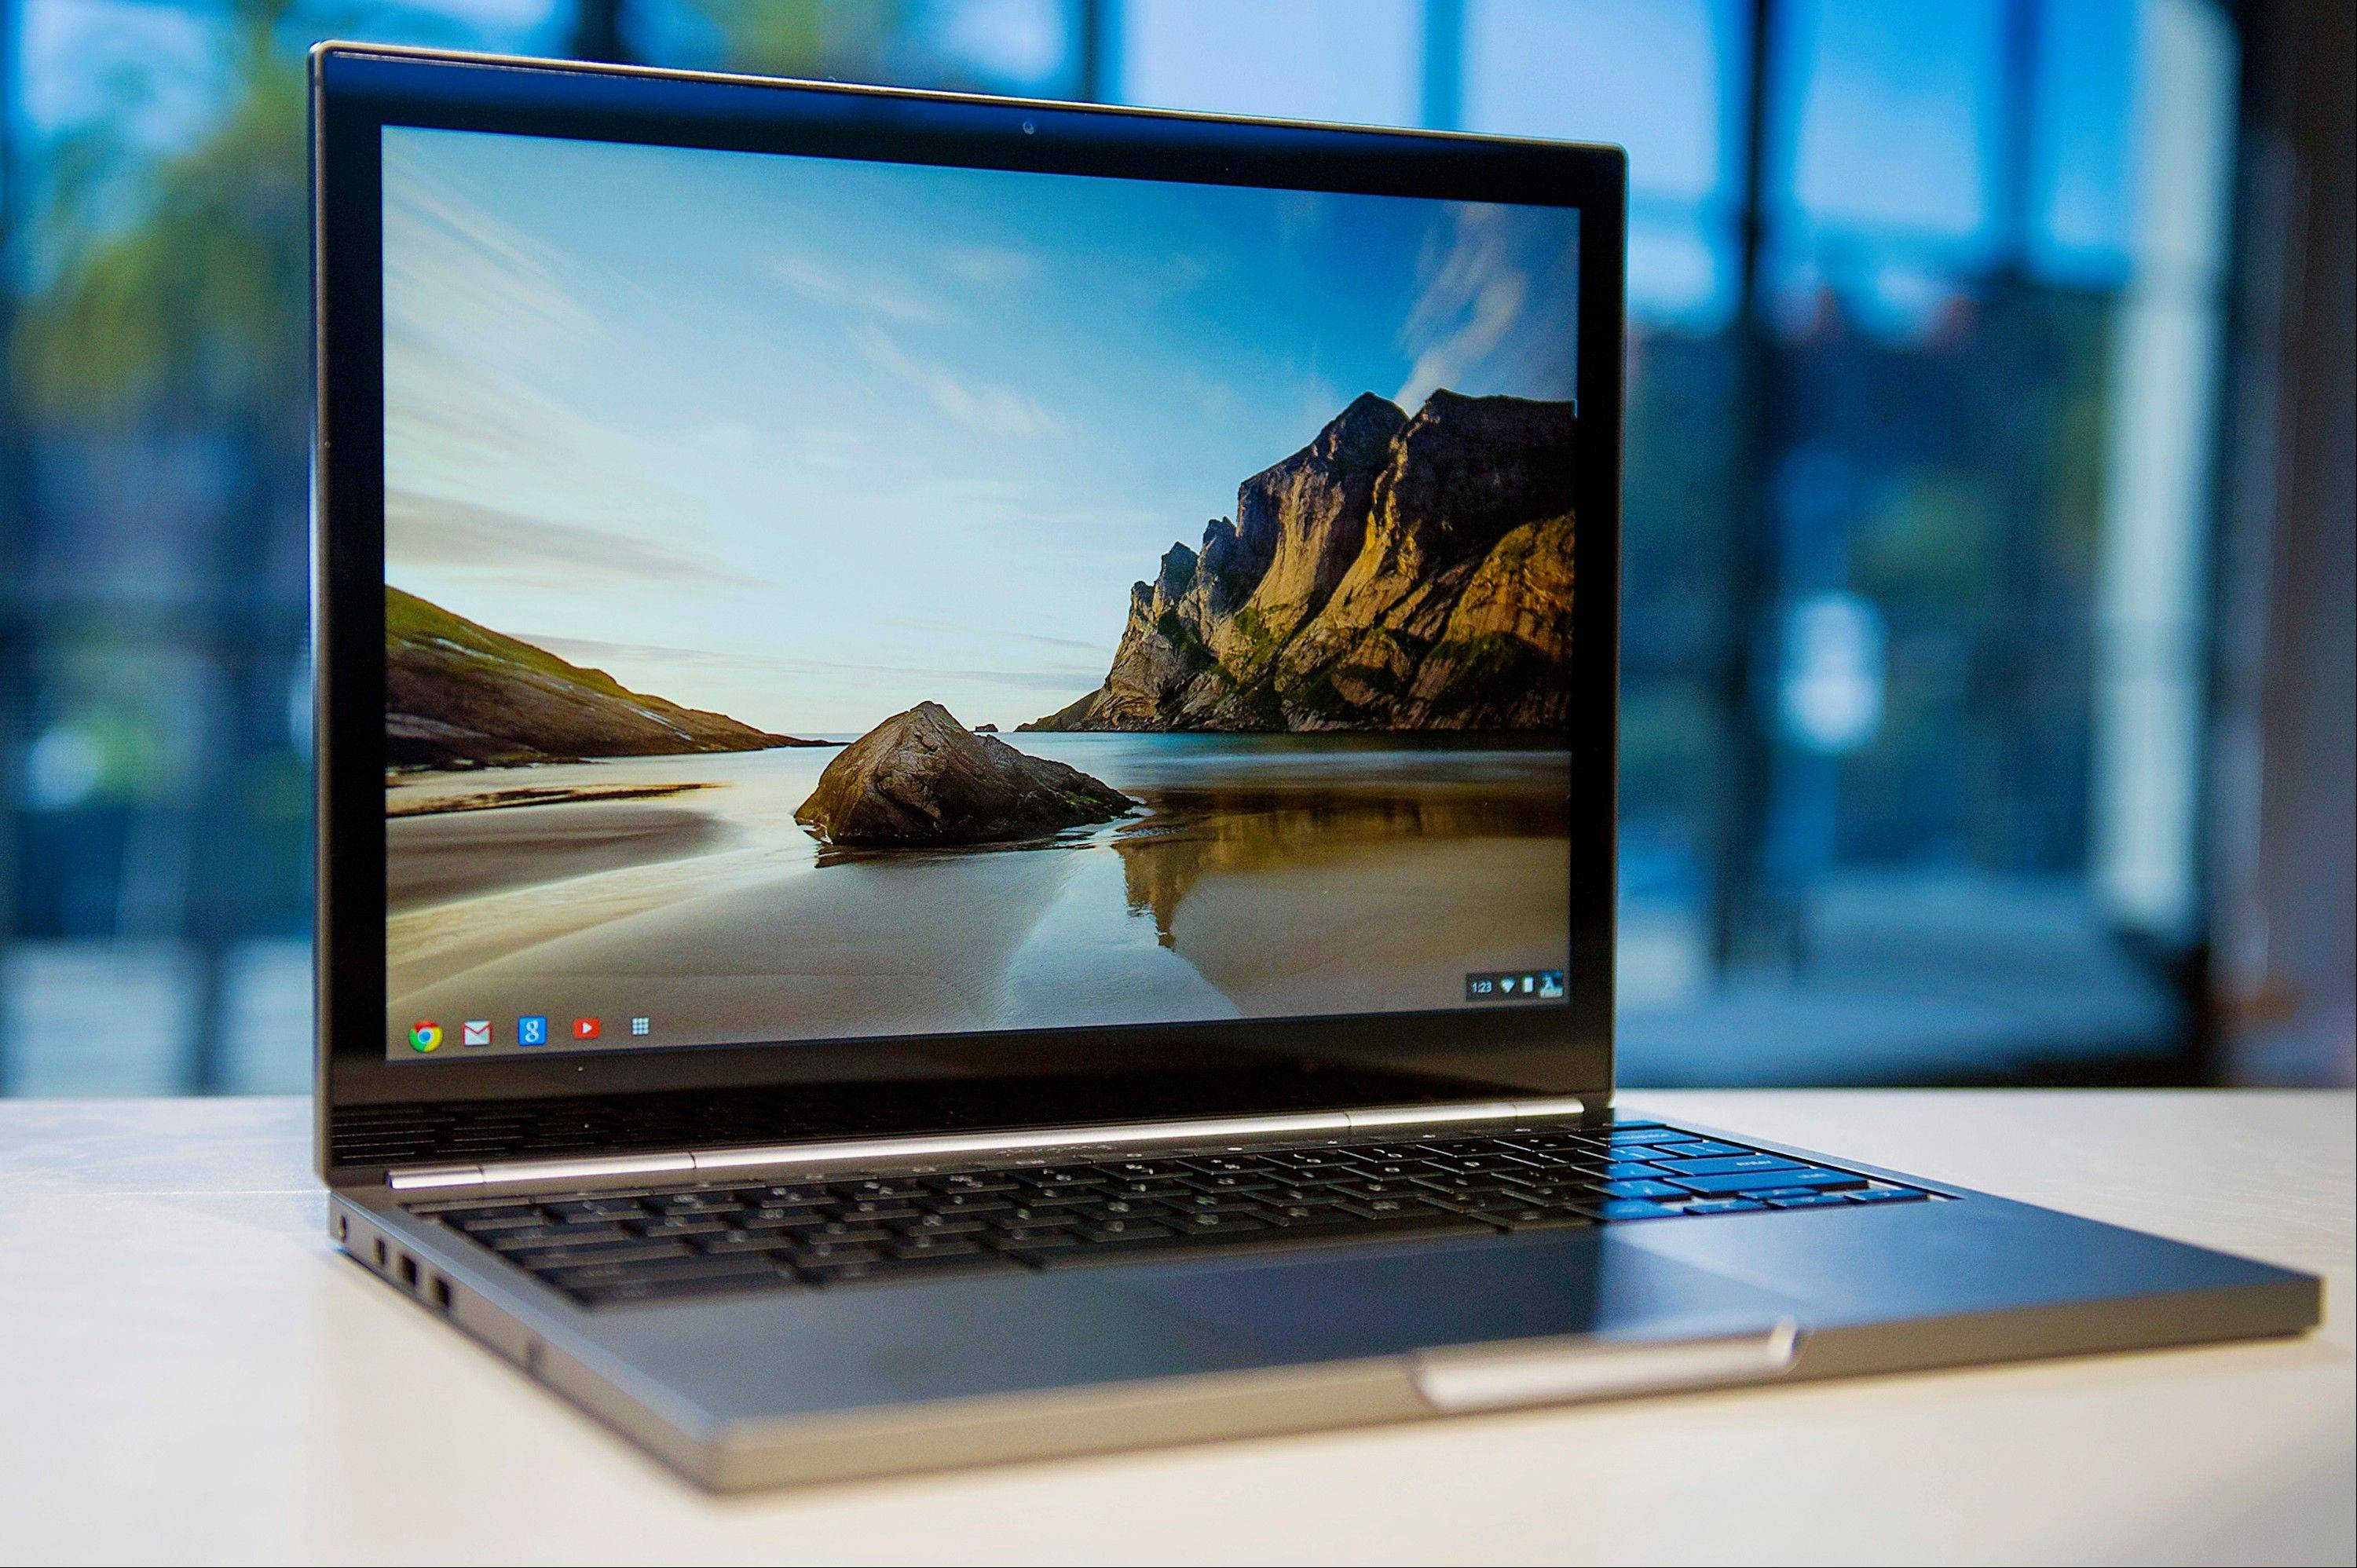 All incoming Maine Township High School District 207 freshman and sophomore students must purchase Google Chromebooks from the district as part of a new program that will eventually eliminate the need for physical textbooks in the classroom.